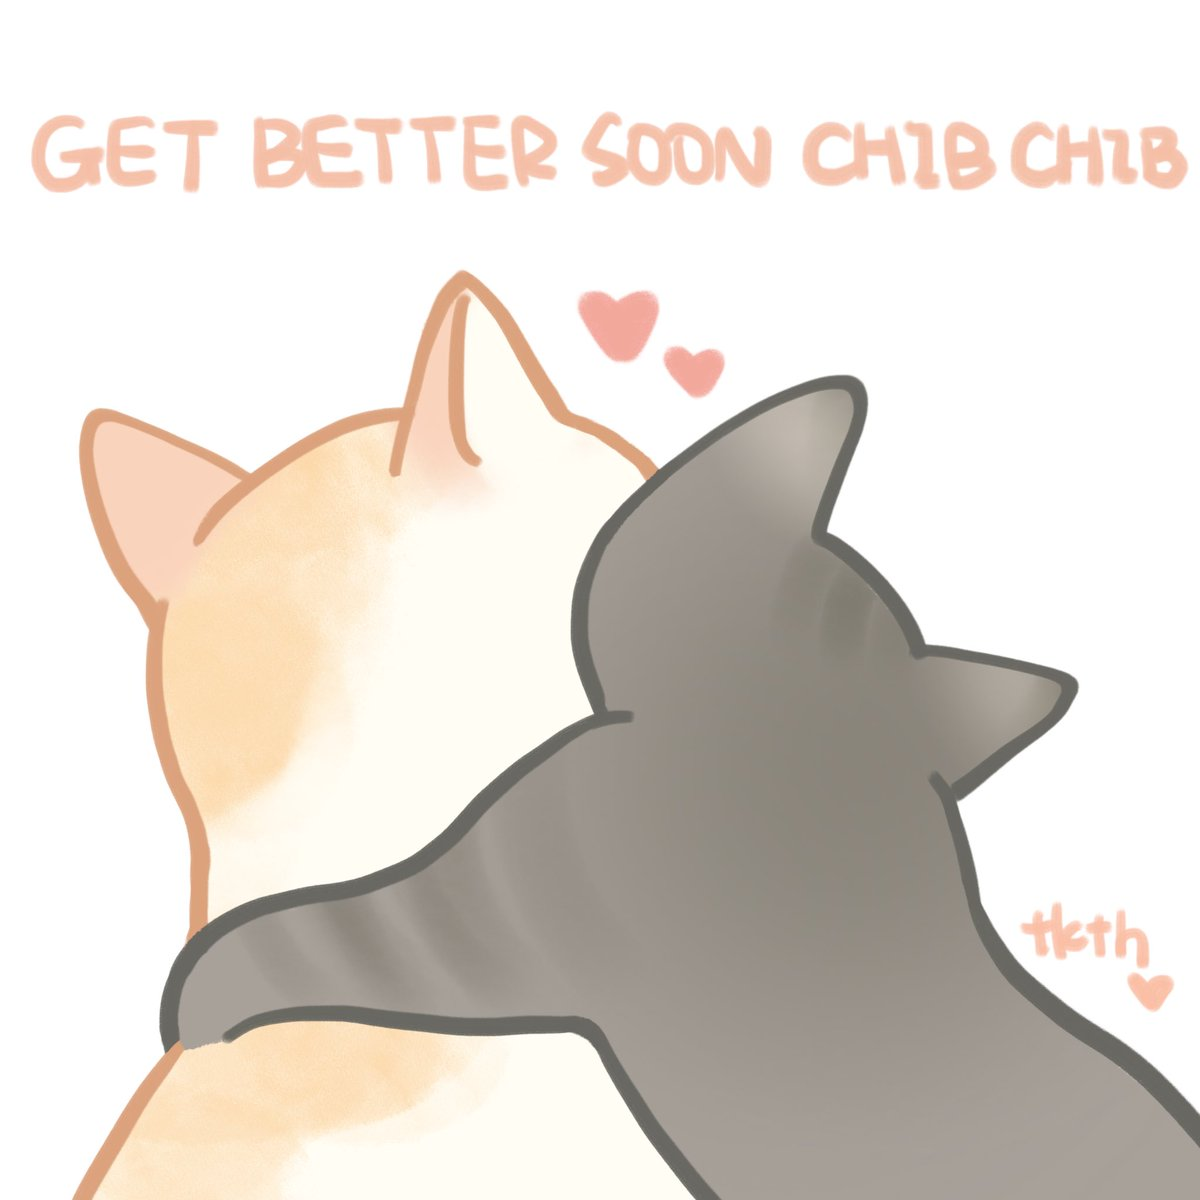 i did this…they're so cutehope chib get better soonpic.twitter.com/ACuznJdwsZ